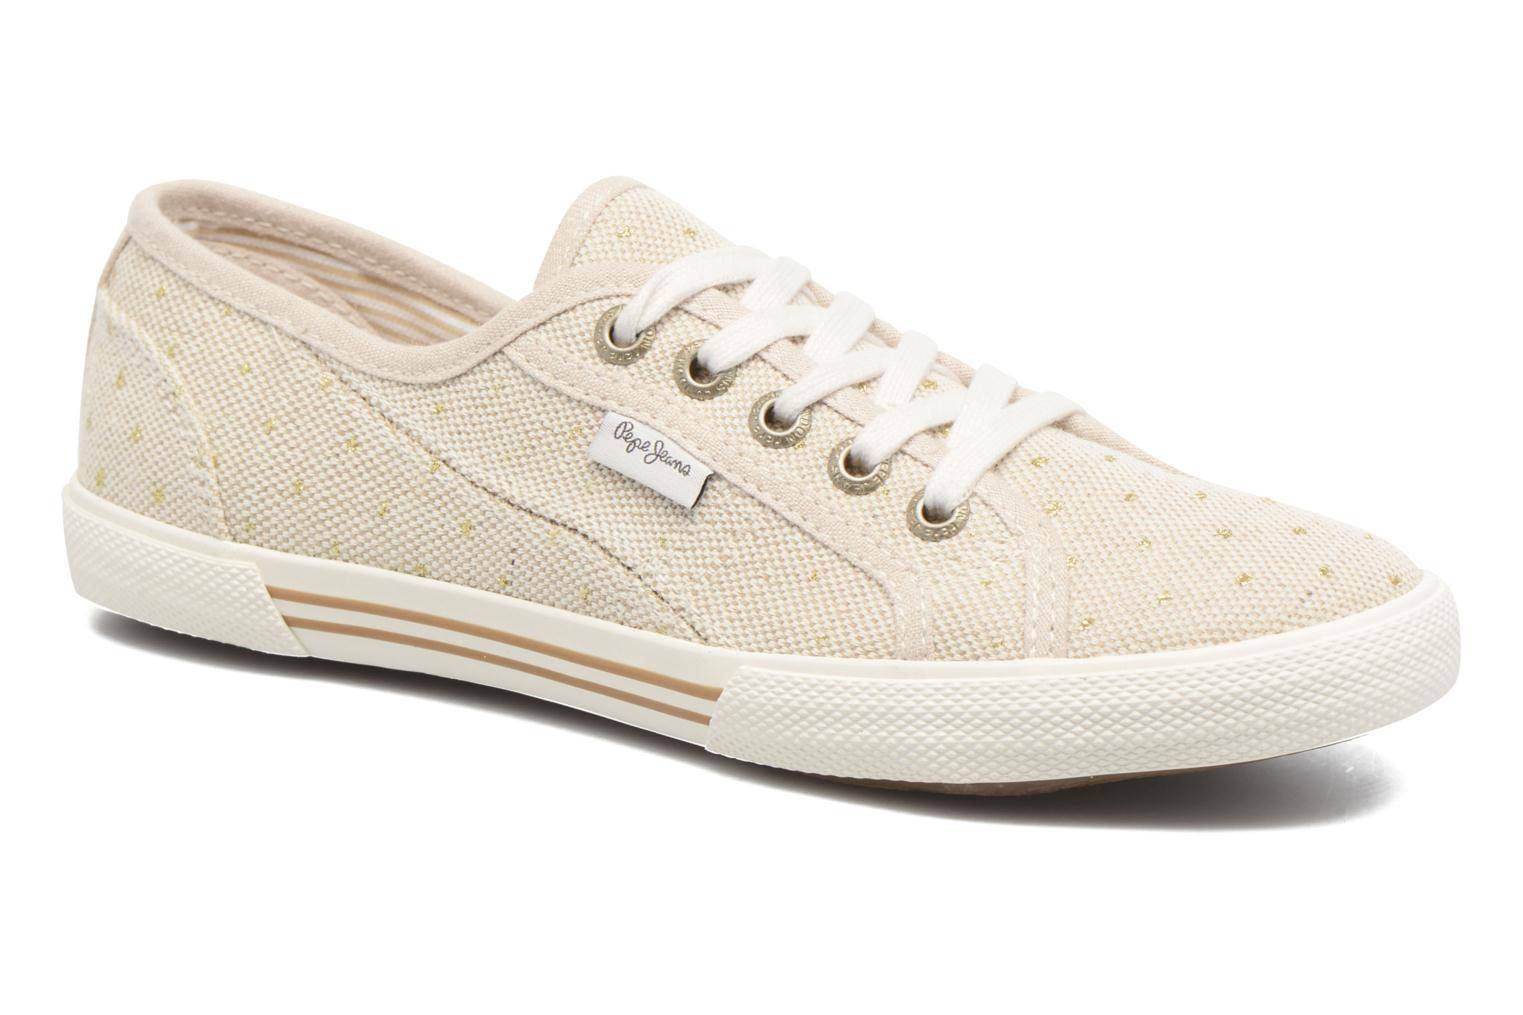 Pepe jeans - Aberlady Spots by  - Tennarit Naisille  / Beige